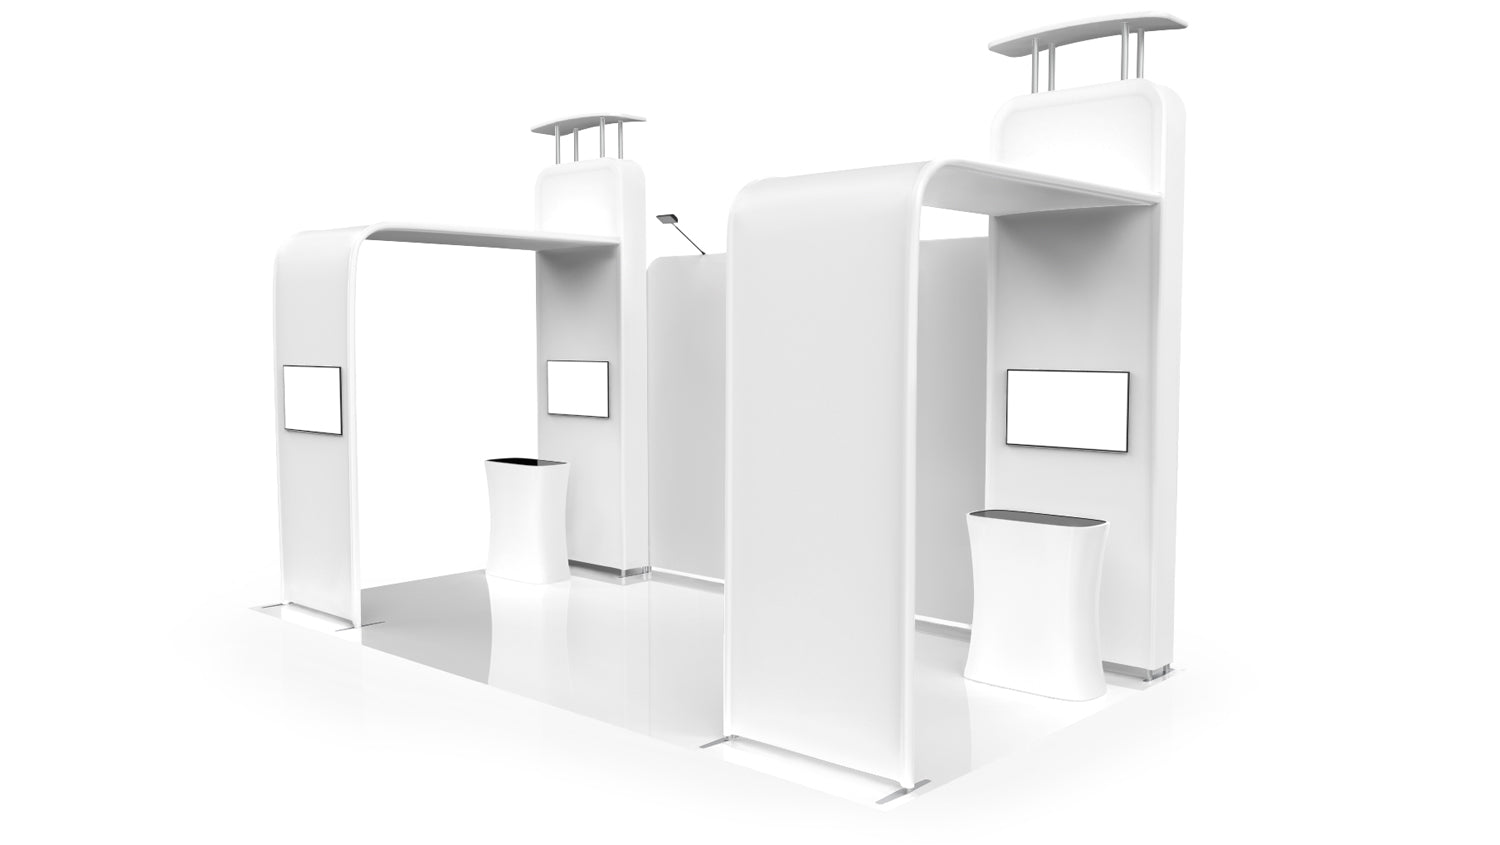 20x10 trade show booth 3D model right view